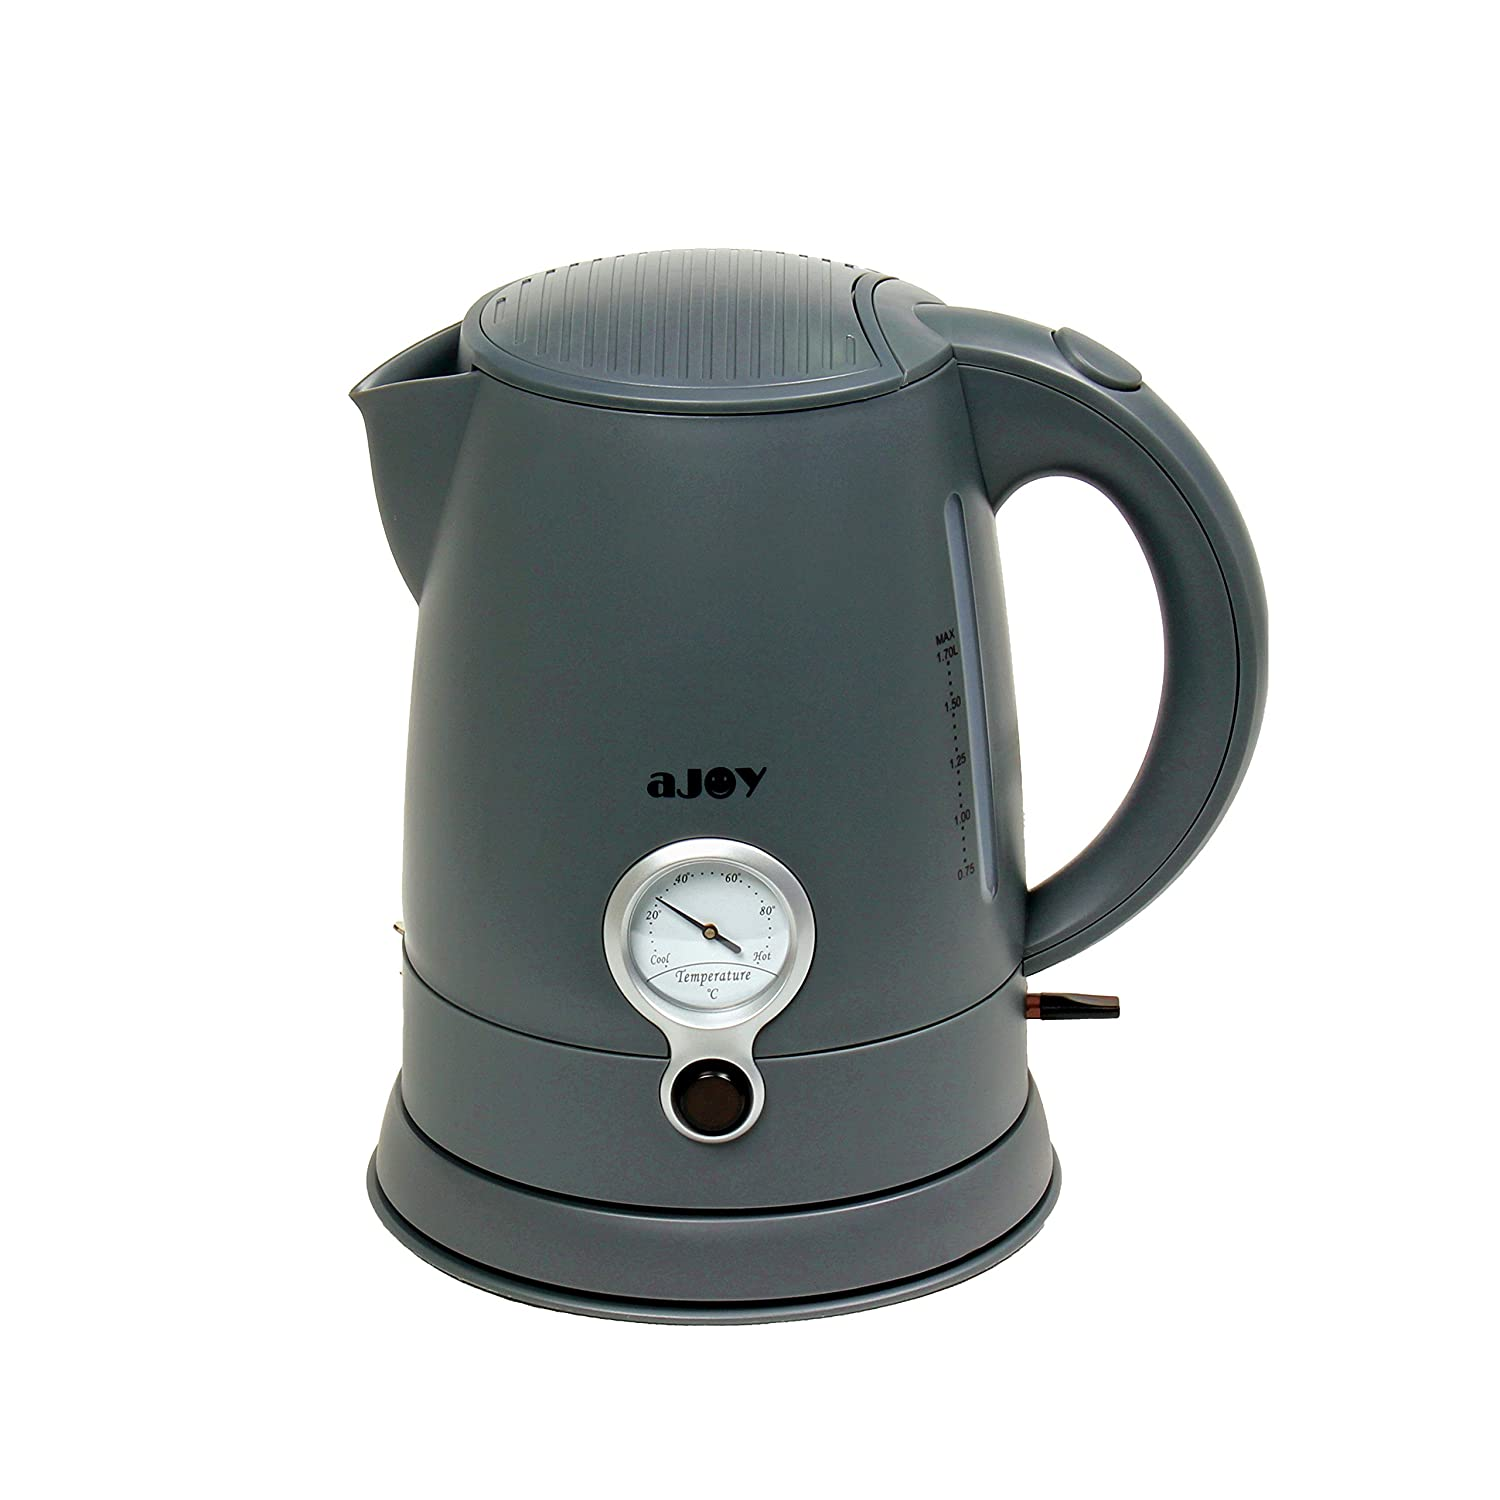 aJOY Professional Designer Series 1.7L Cordless Electric Kettle, BPA Free, 360 Degree Conceal Heating Element, Overheat Protection Control (Grey)